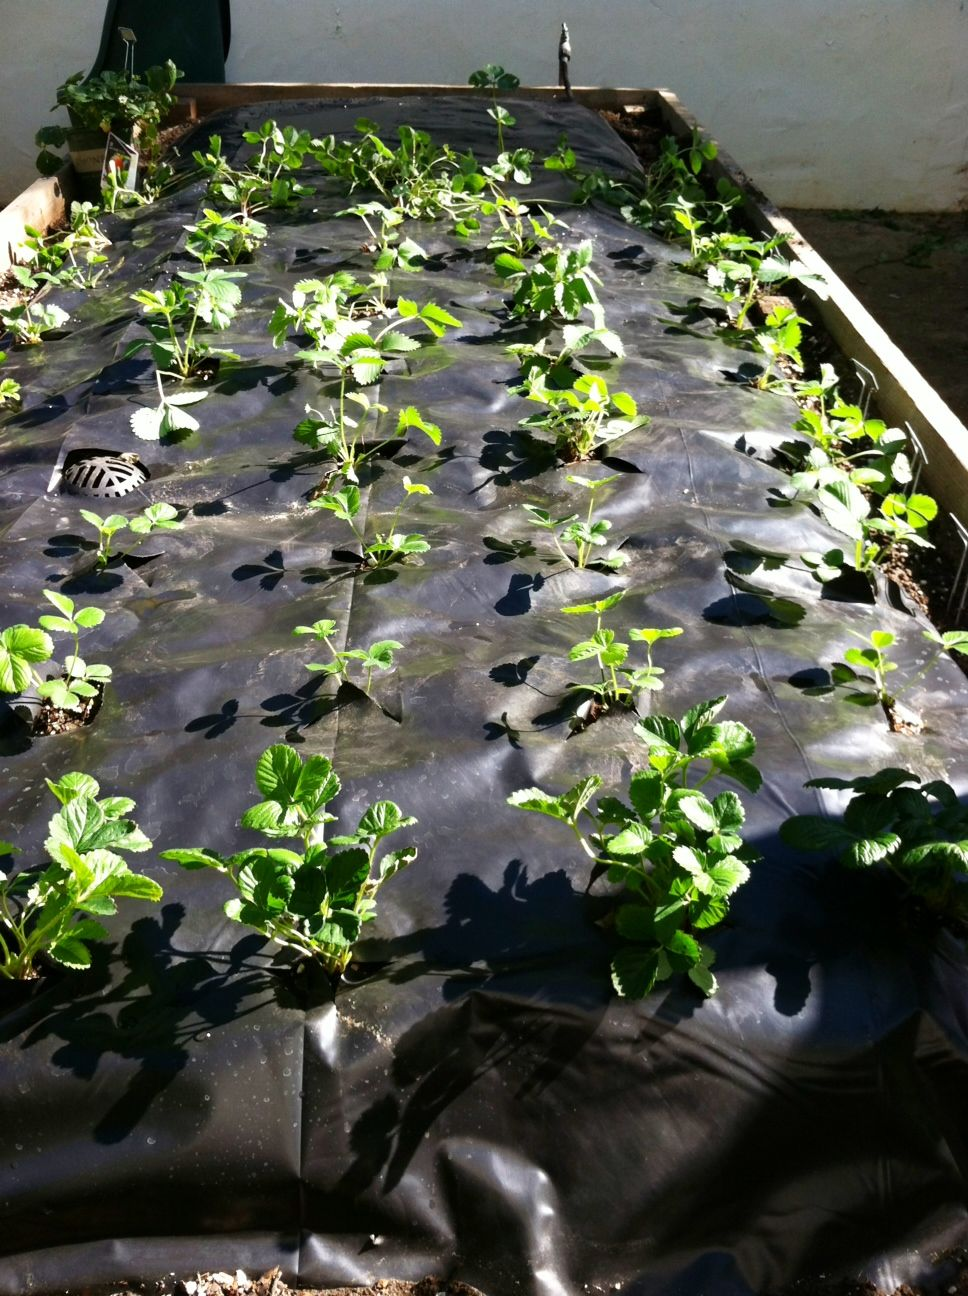 Using Plastic Sheeting To Grow Strawberries Lay Soaker Hose Or Drip Irrigation Under The Plastic Instead Of P Growing Strawberries Strawberry Plants Plants